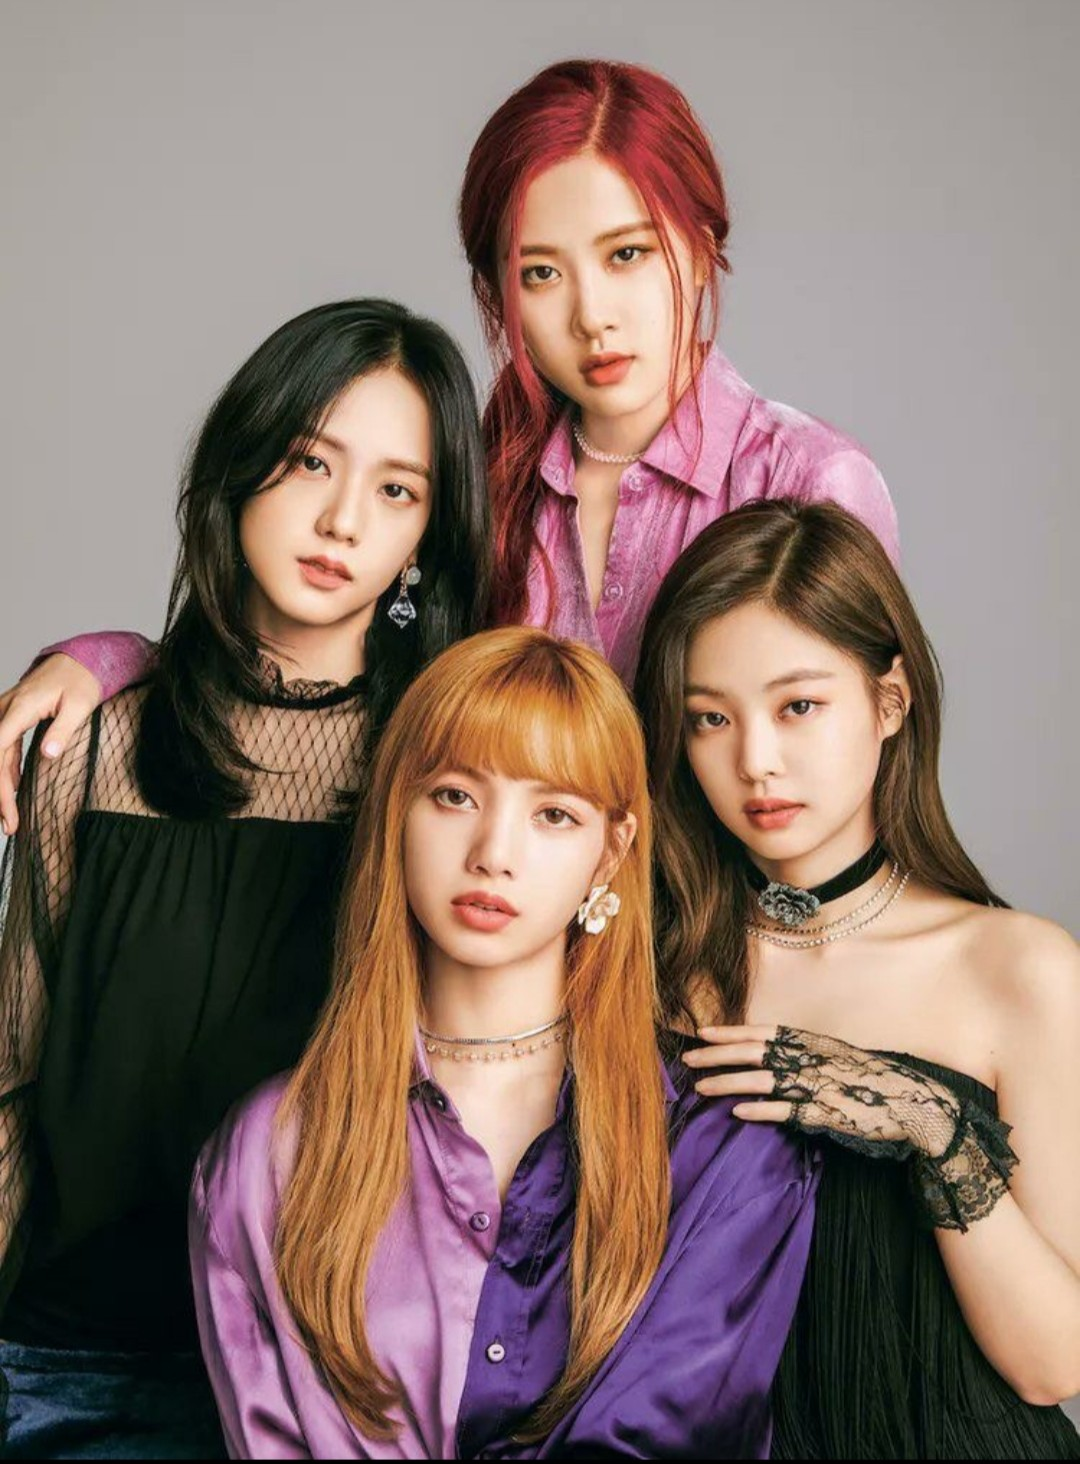 photoshoot, blackpink, and band image